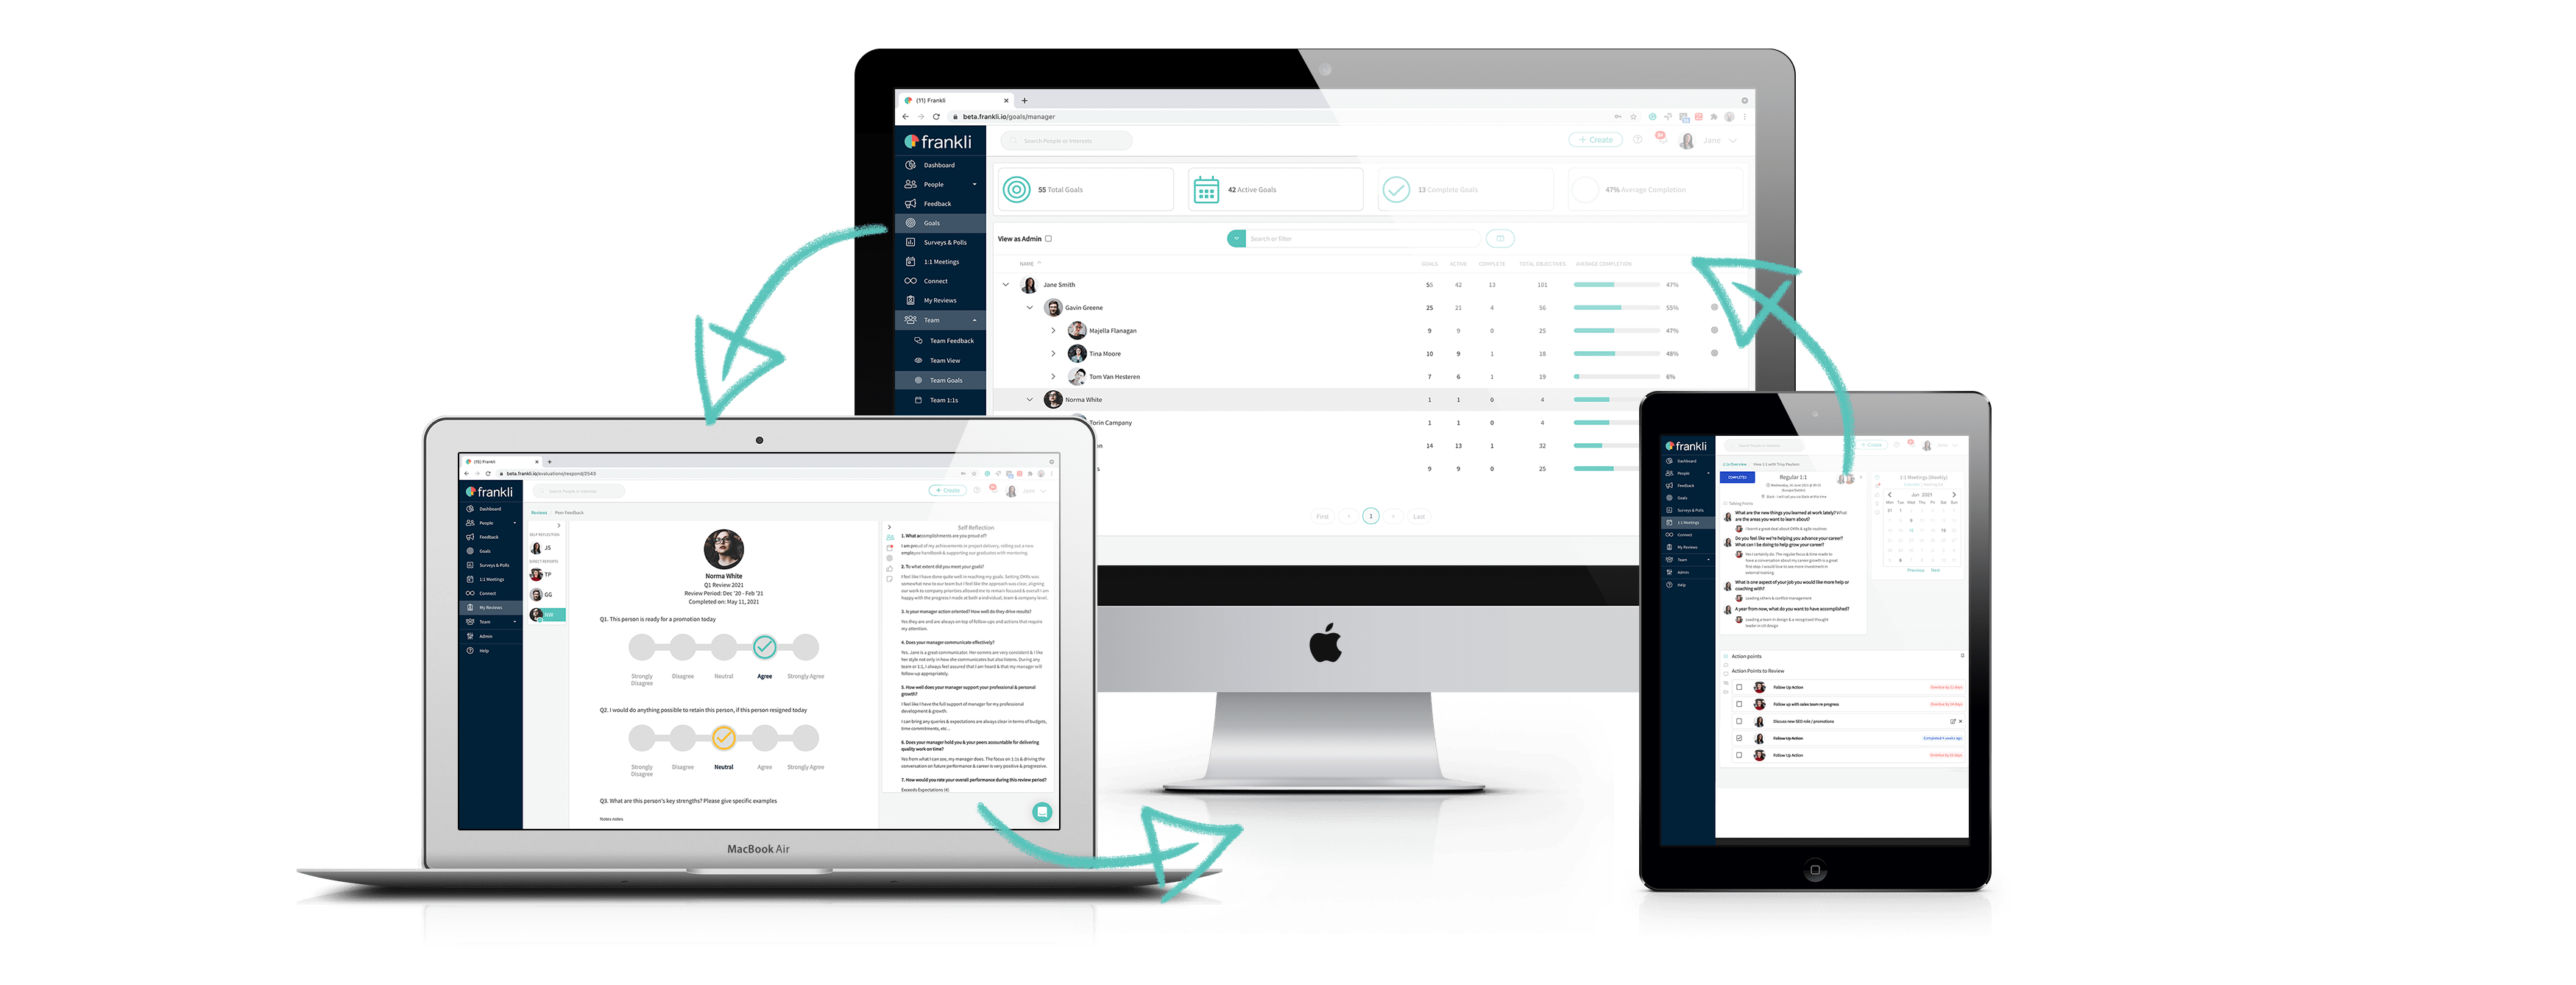 Image showcasing the frankli  performance management platform across multiple devices on screen